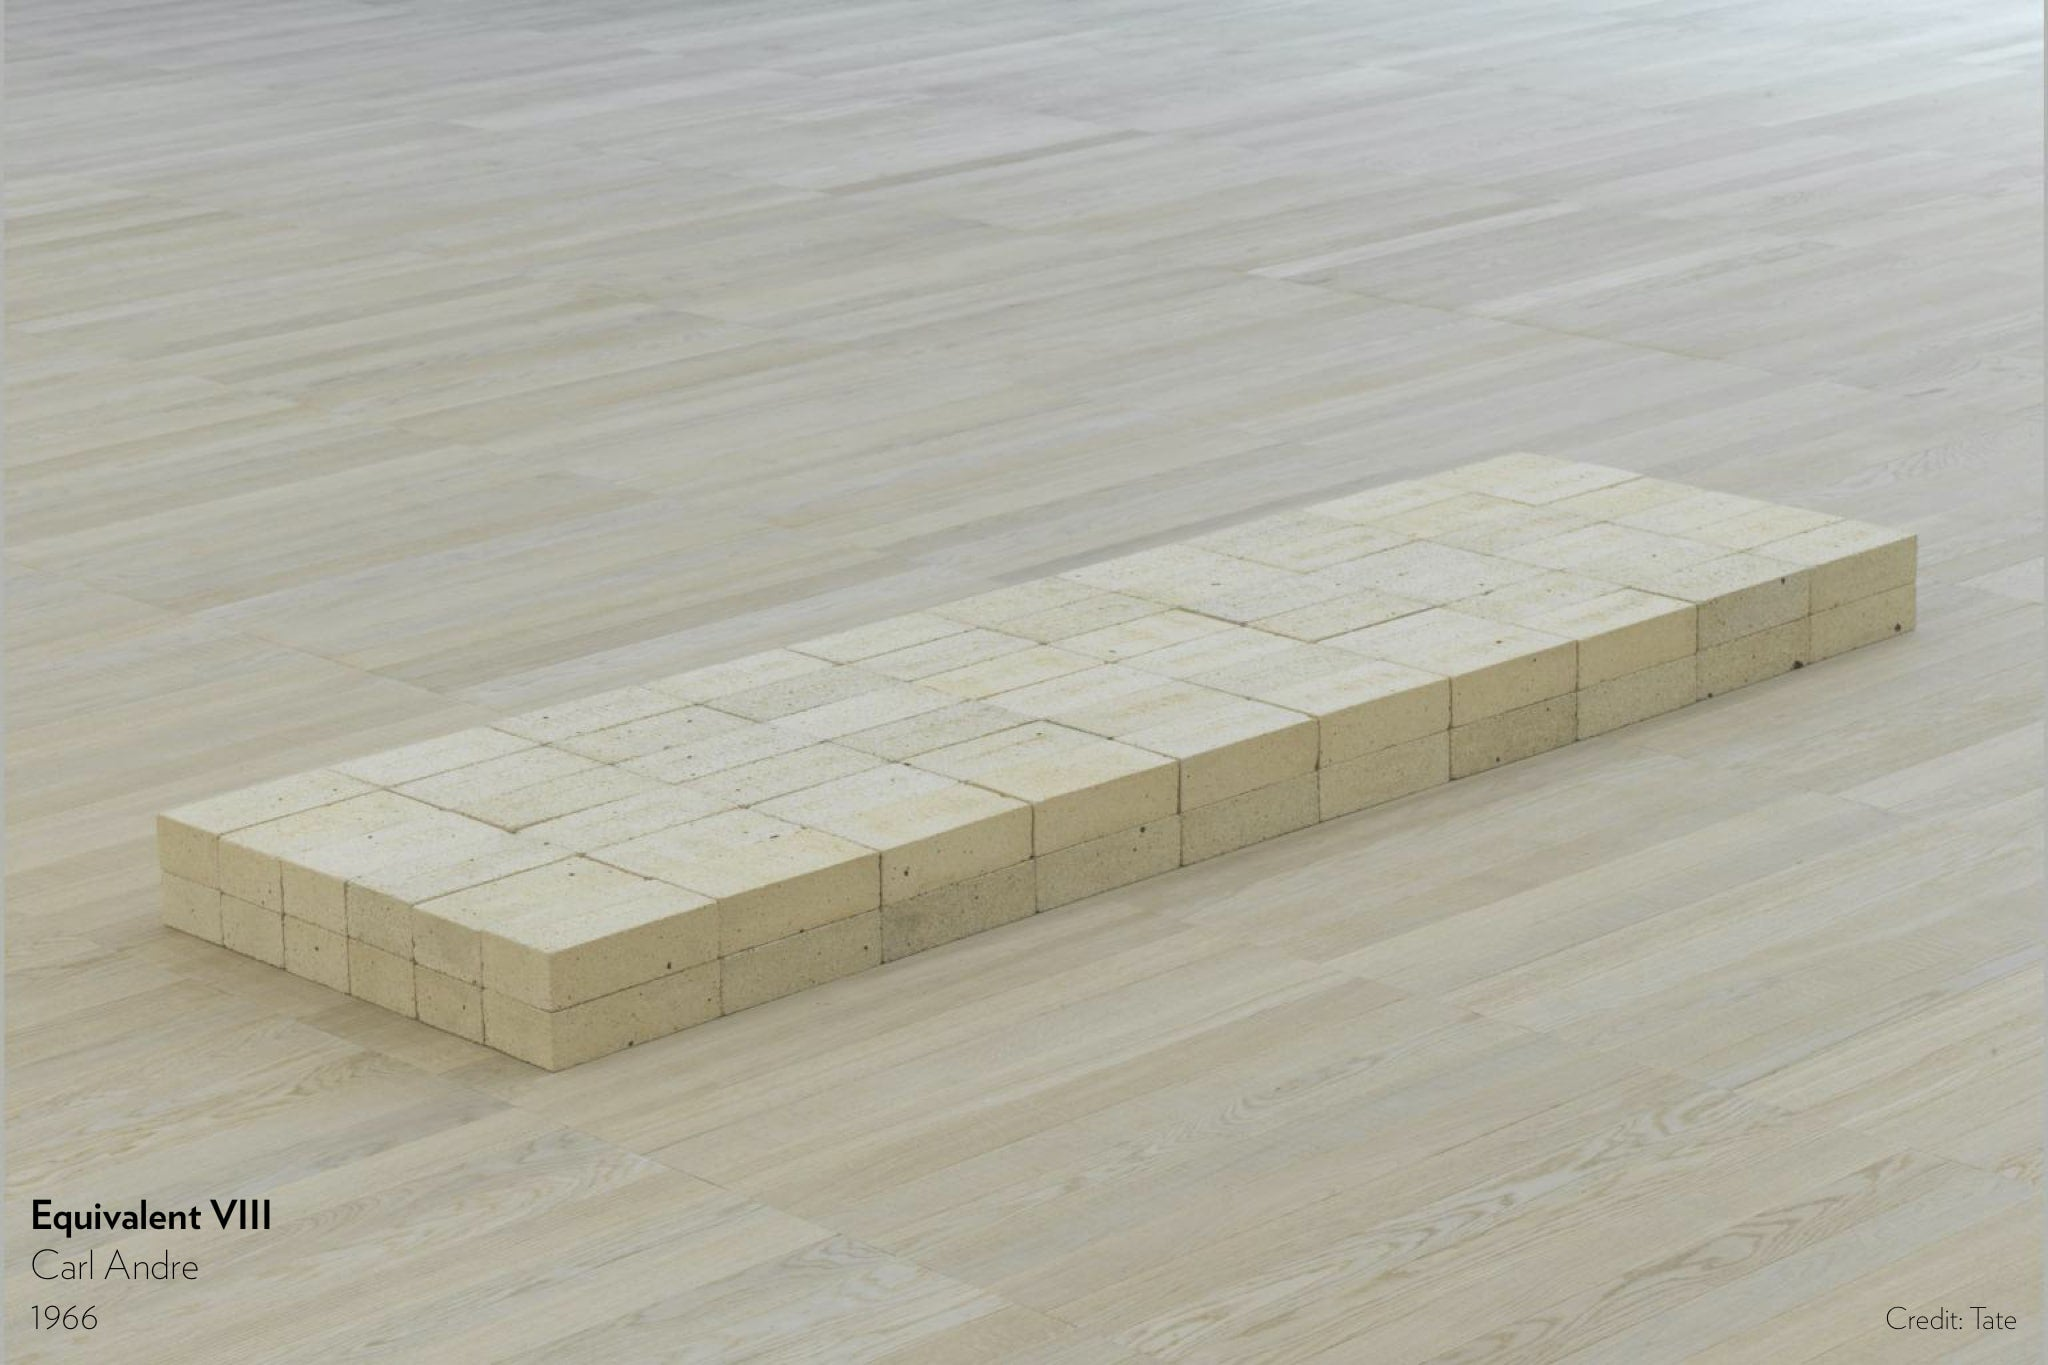 Equivalent VIII by Carl Andre, 1966.